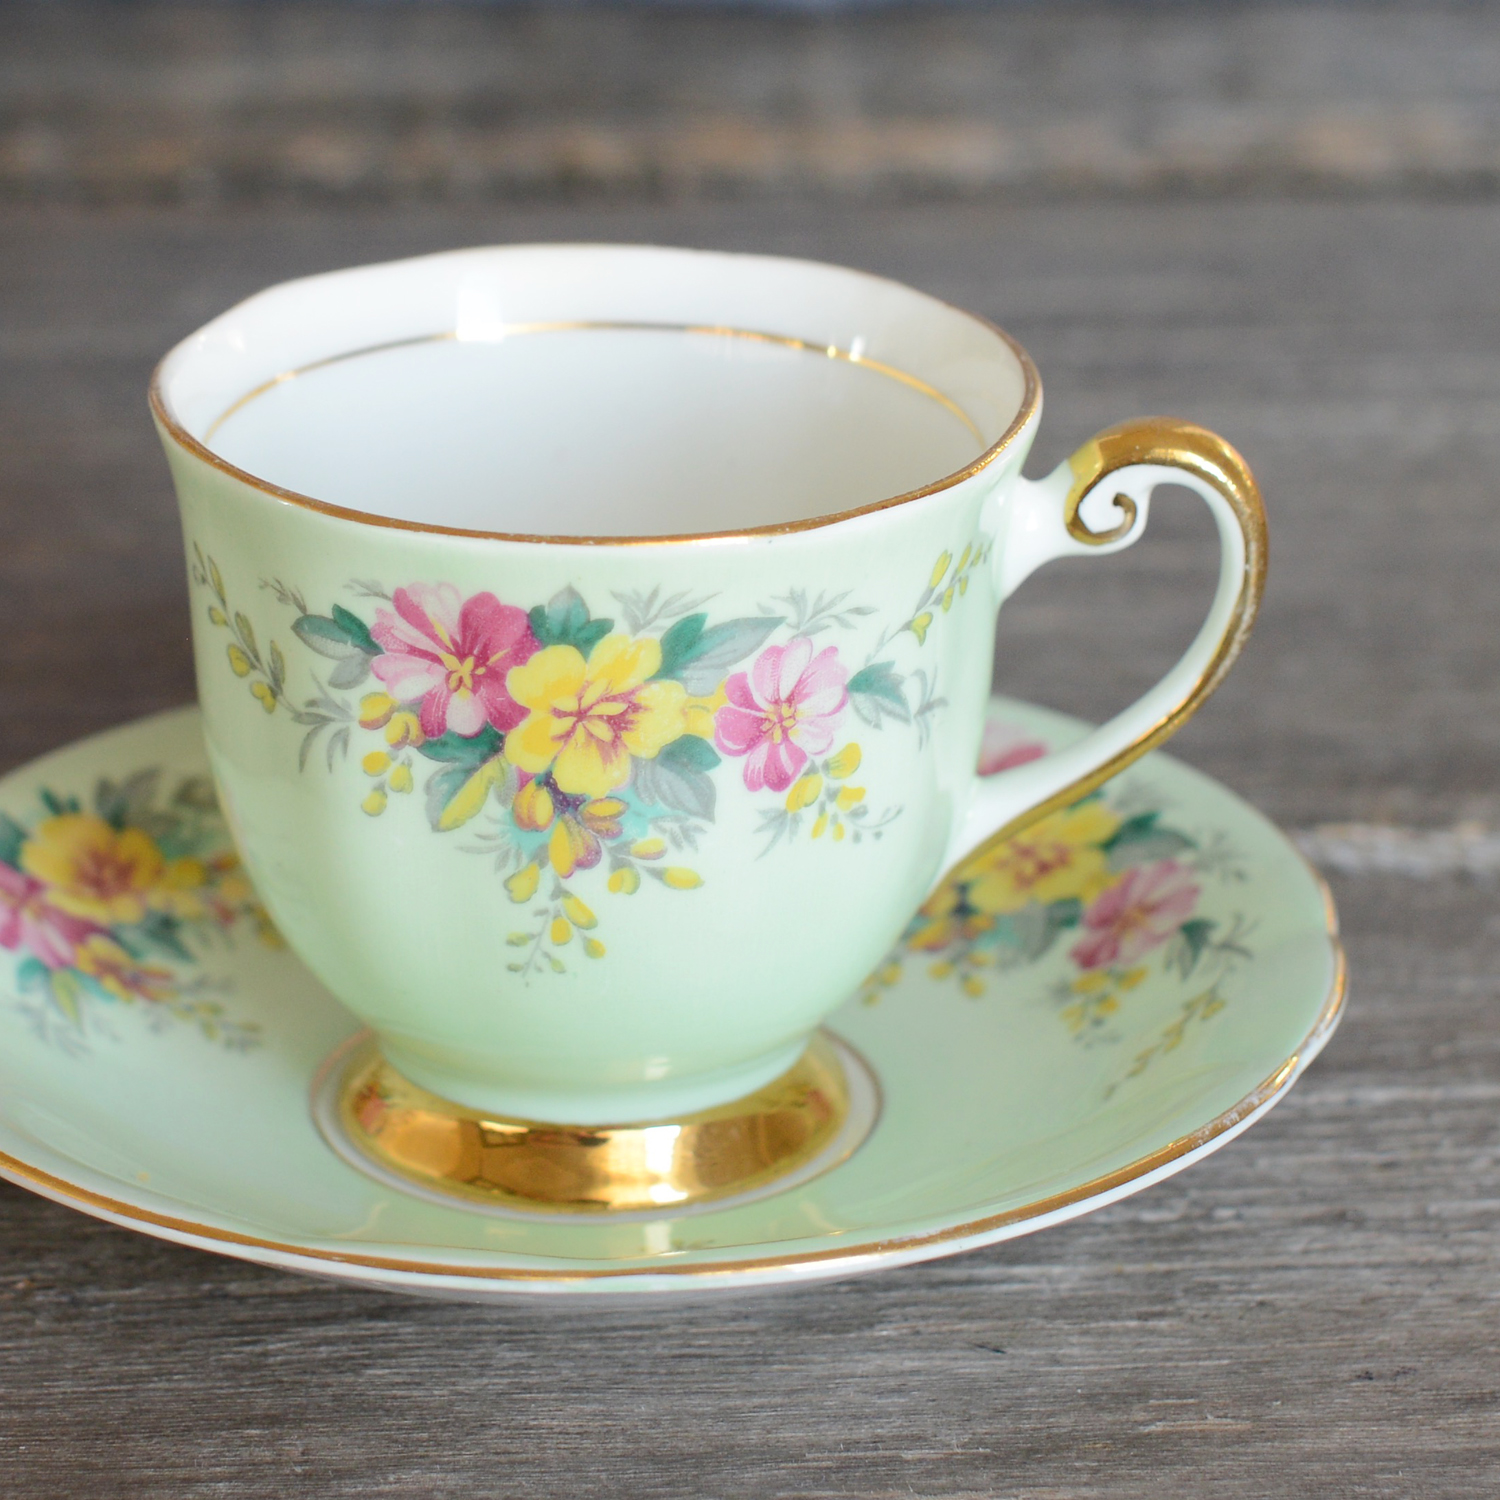 stockton tea cup and saucer